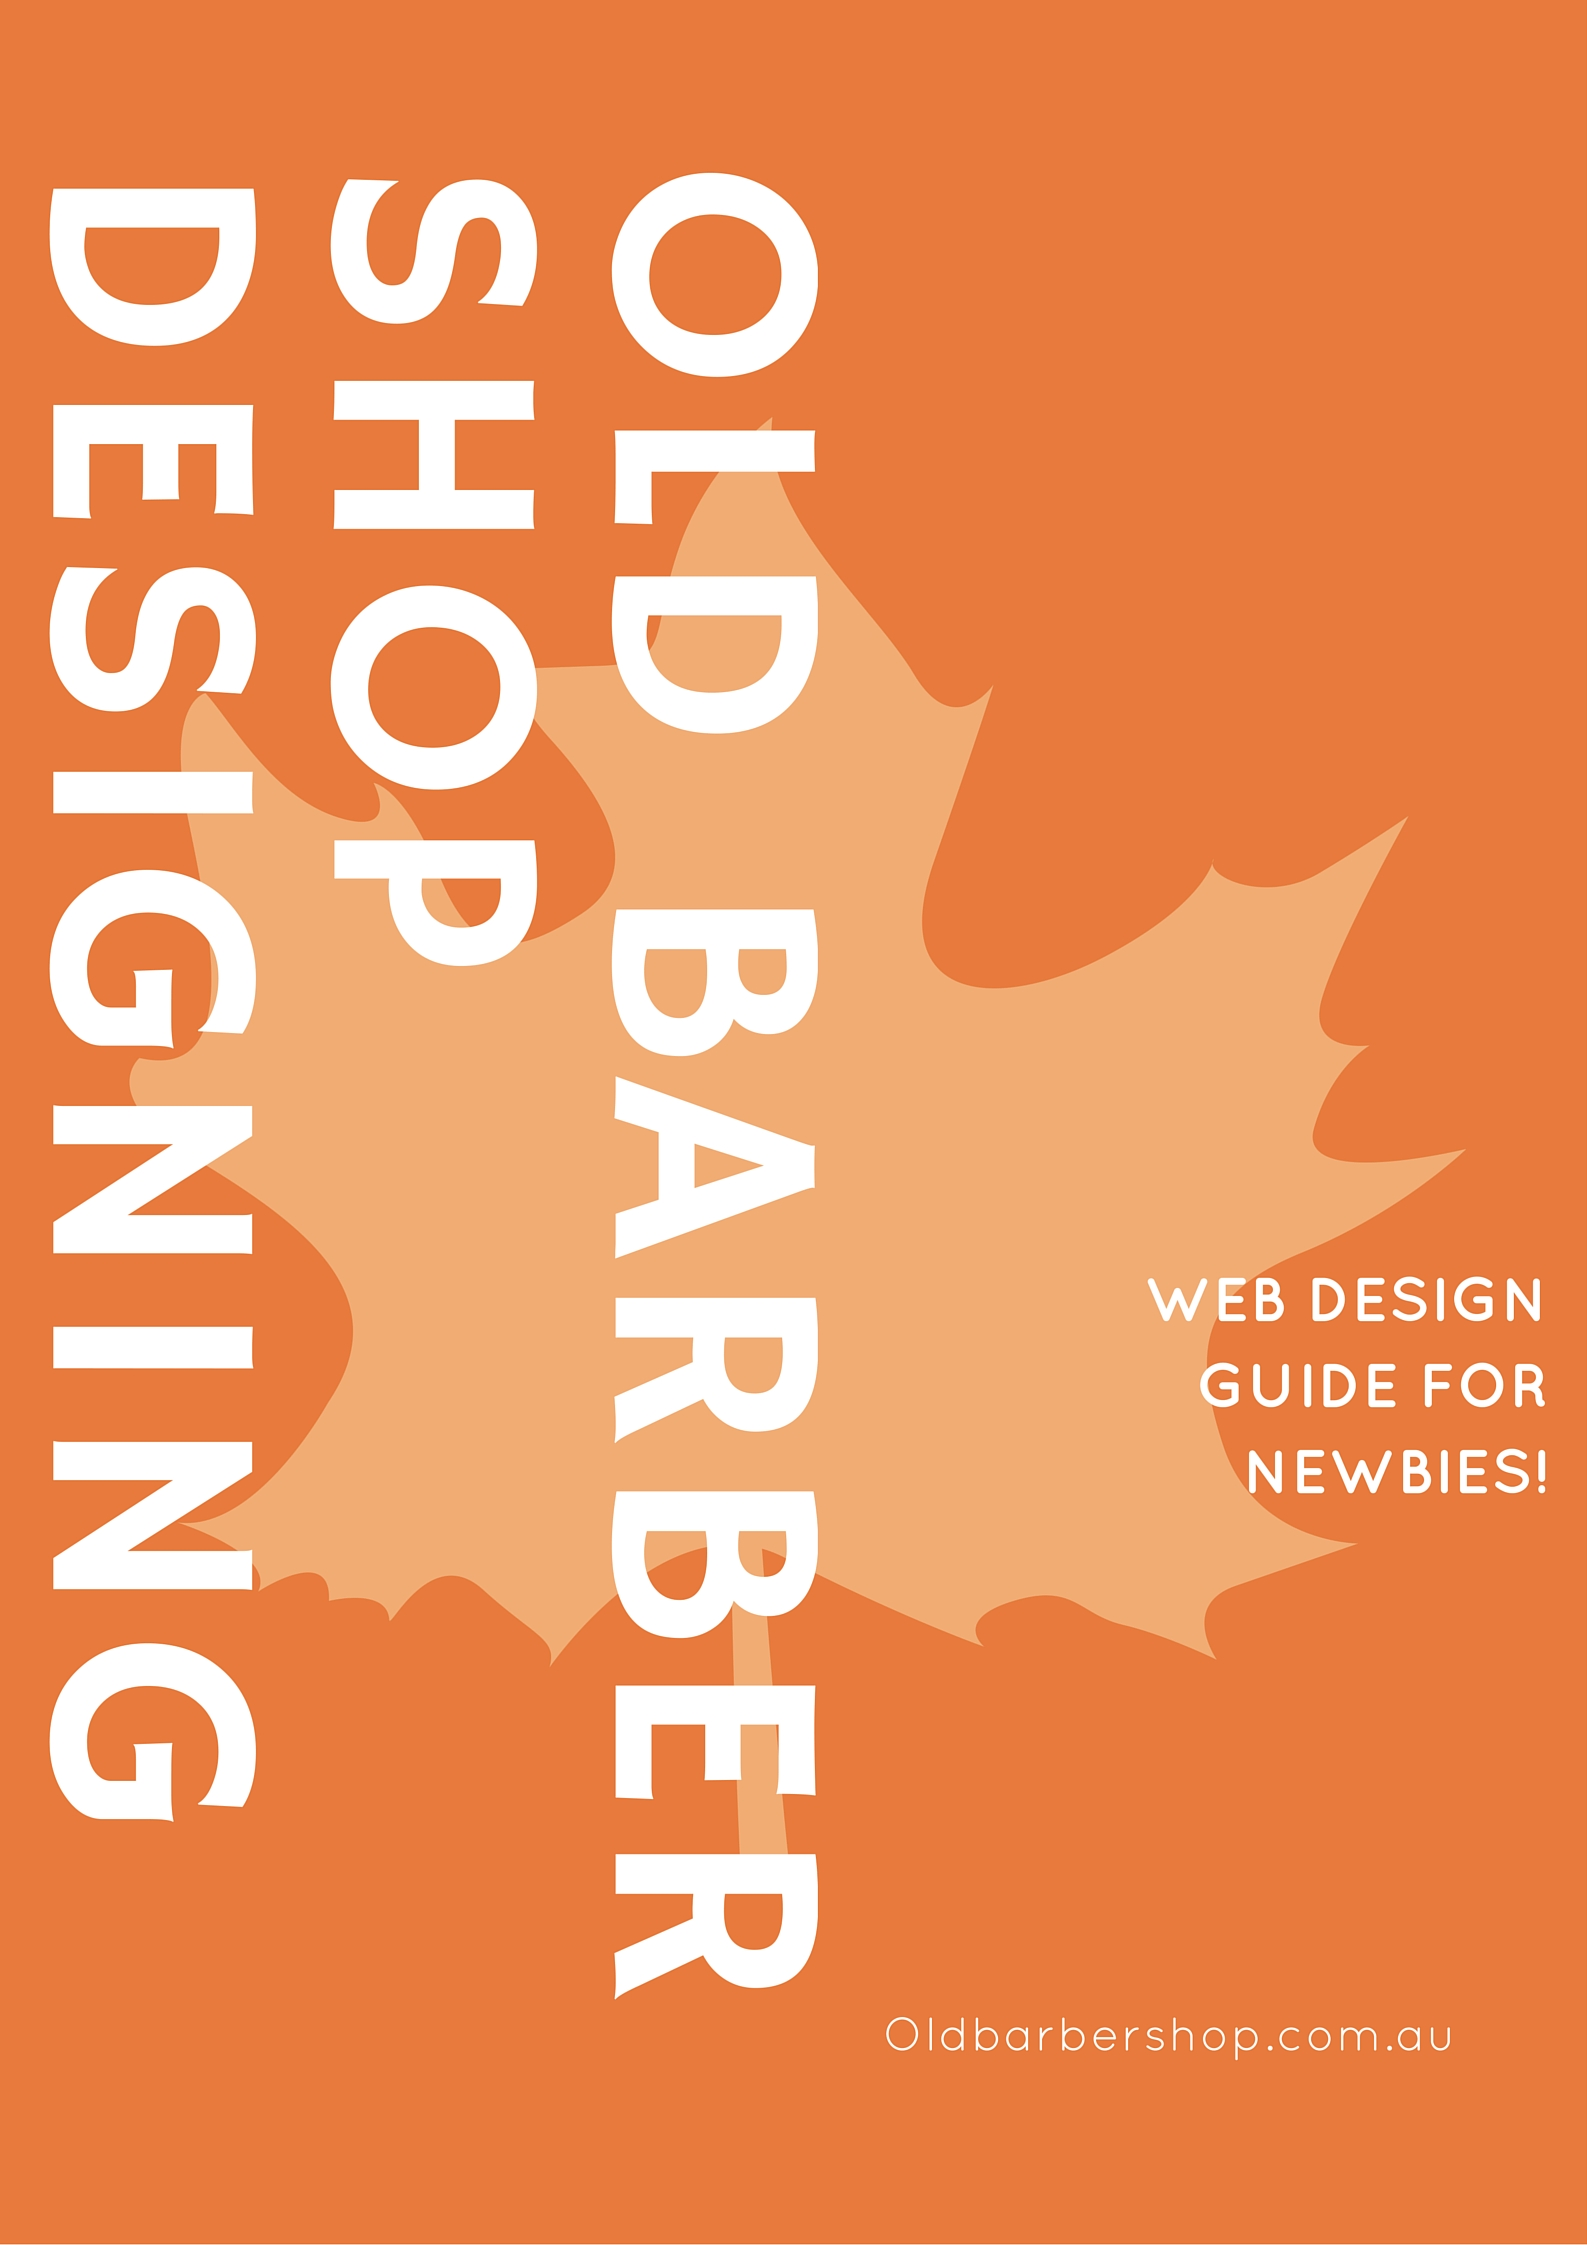 Web Design Guide for Newbies!